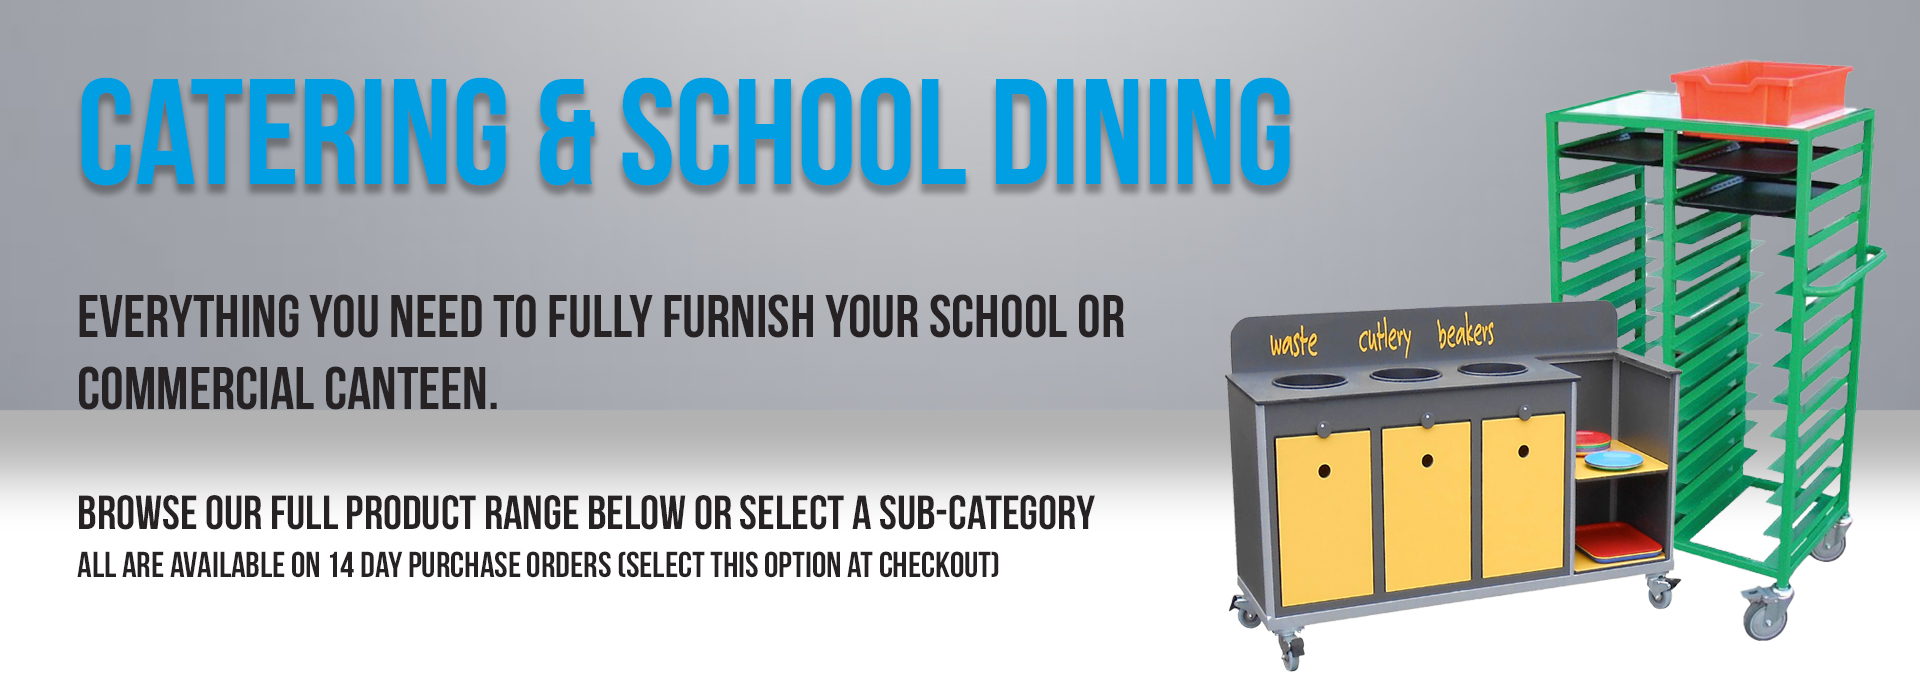 catering-and-school-dining-banner.jpg